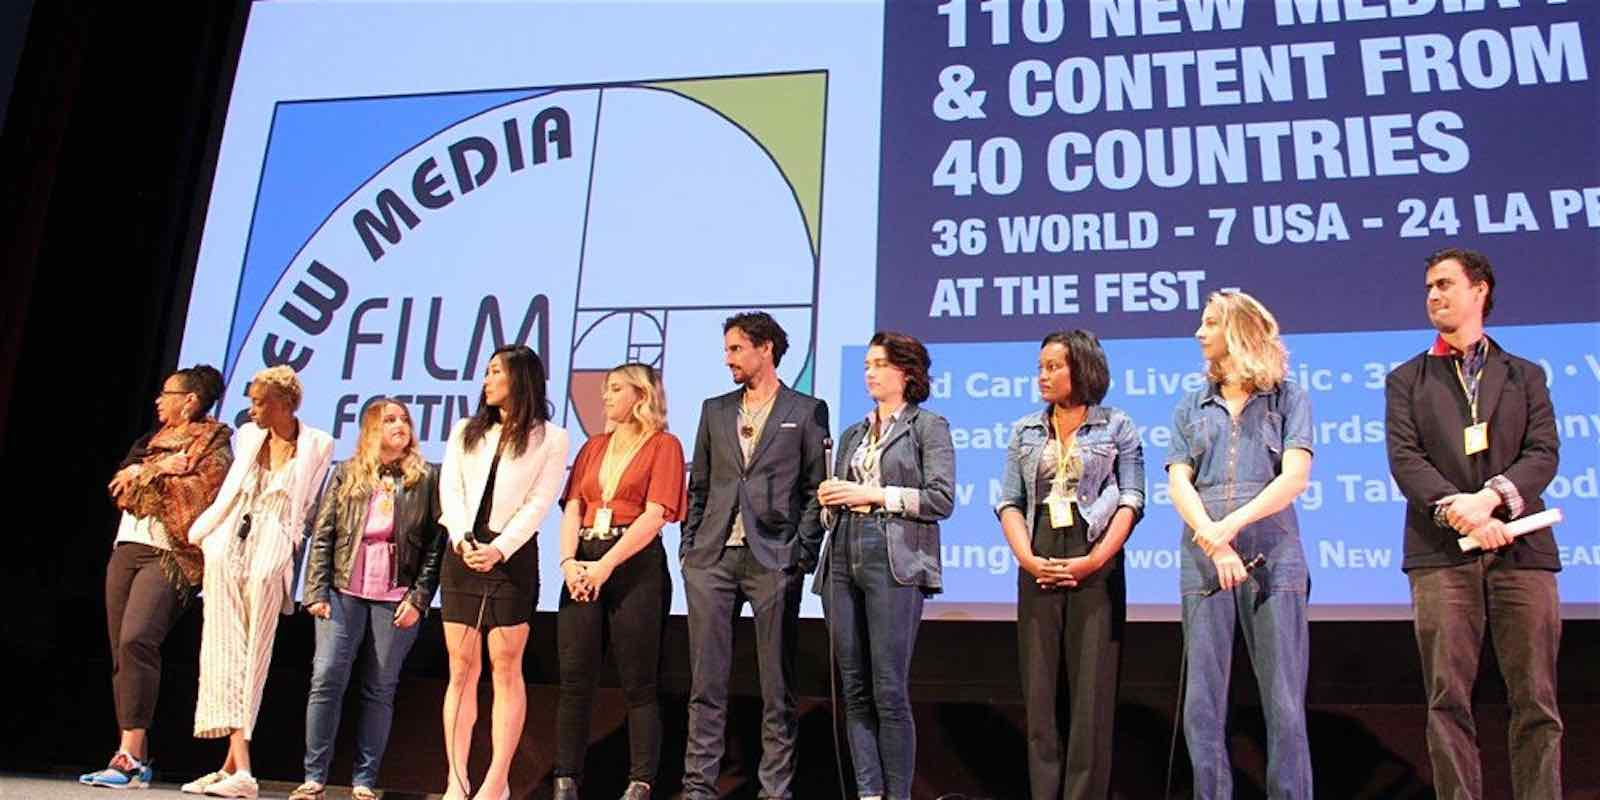 In its 11th year, the New Media Film Festival continues to show the best of innovation in filmmaking techniques. Here's why you should join in on the fun.